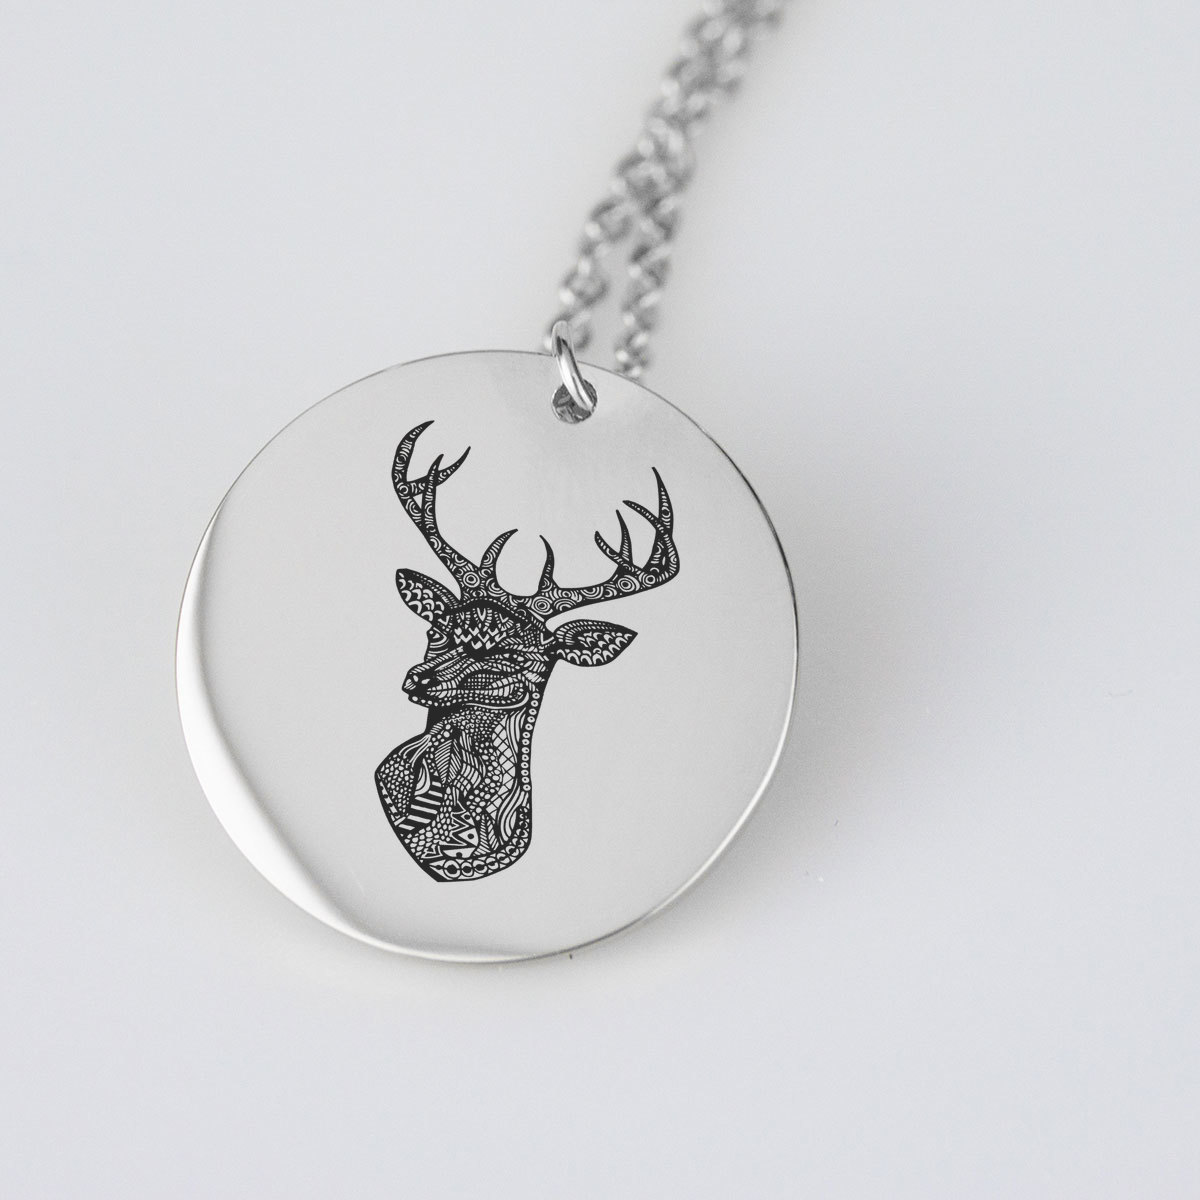 Lovely Dear Engraved Charm Necklace